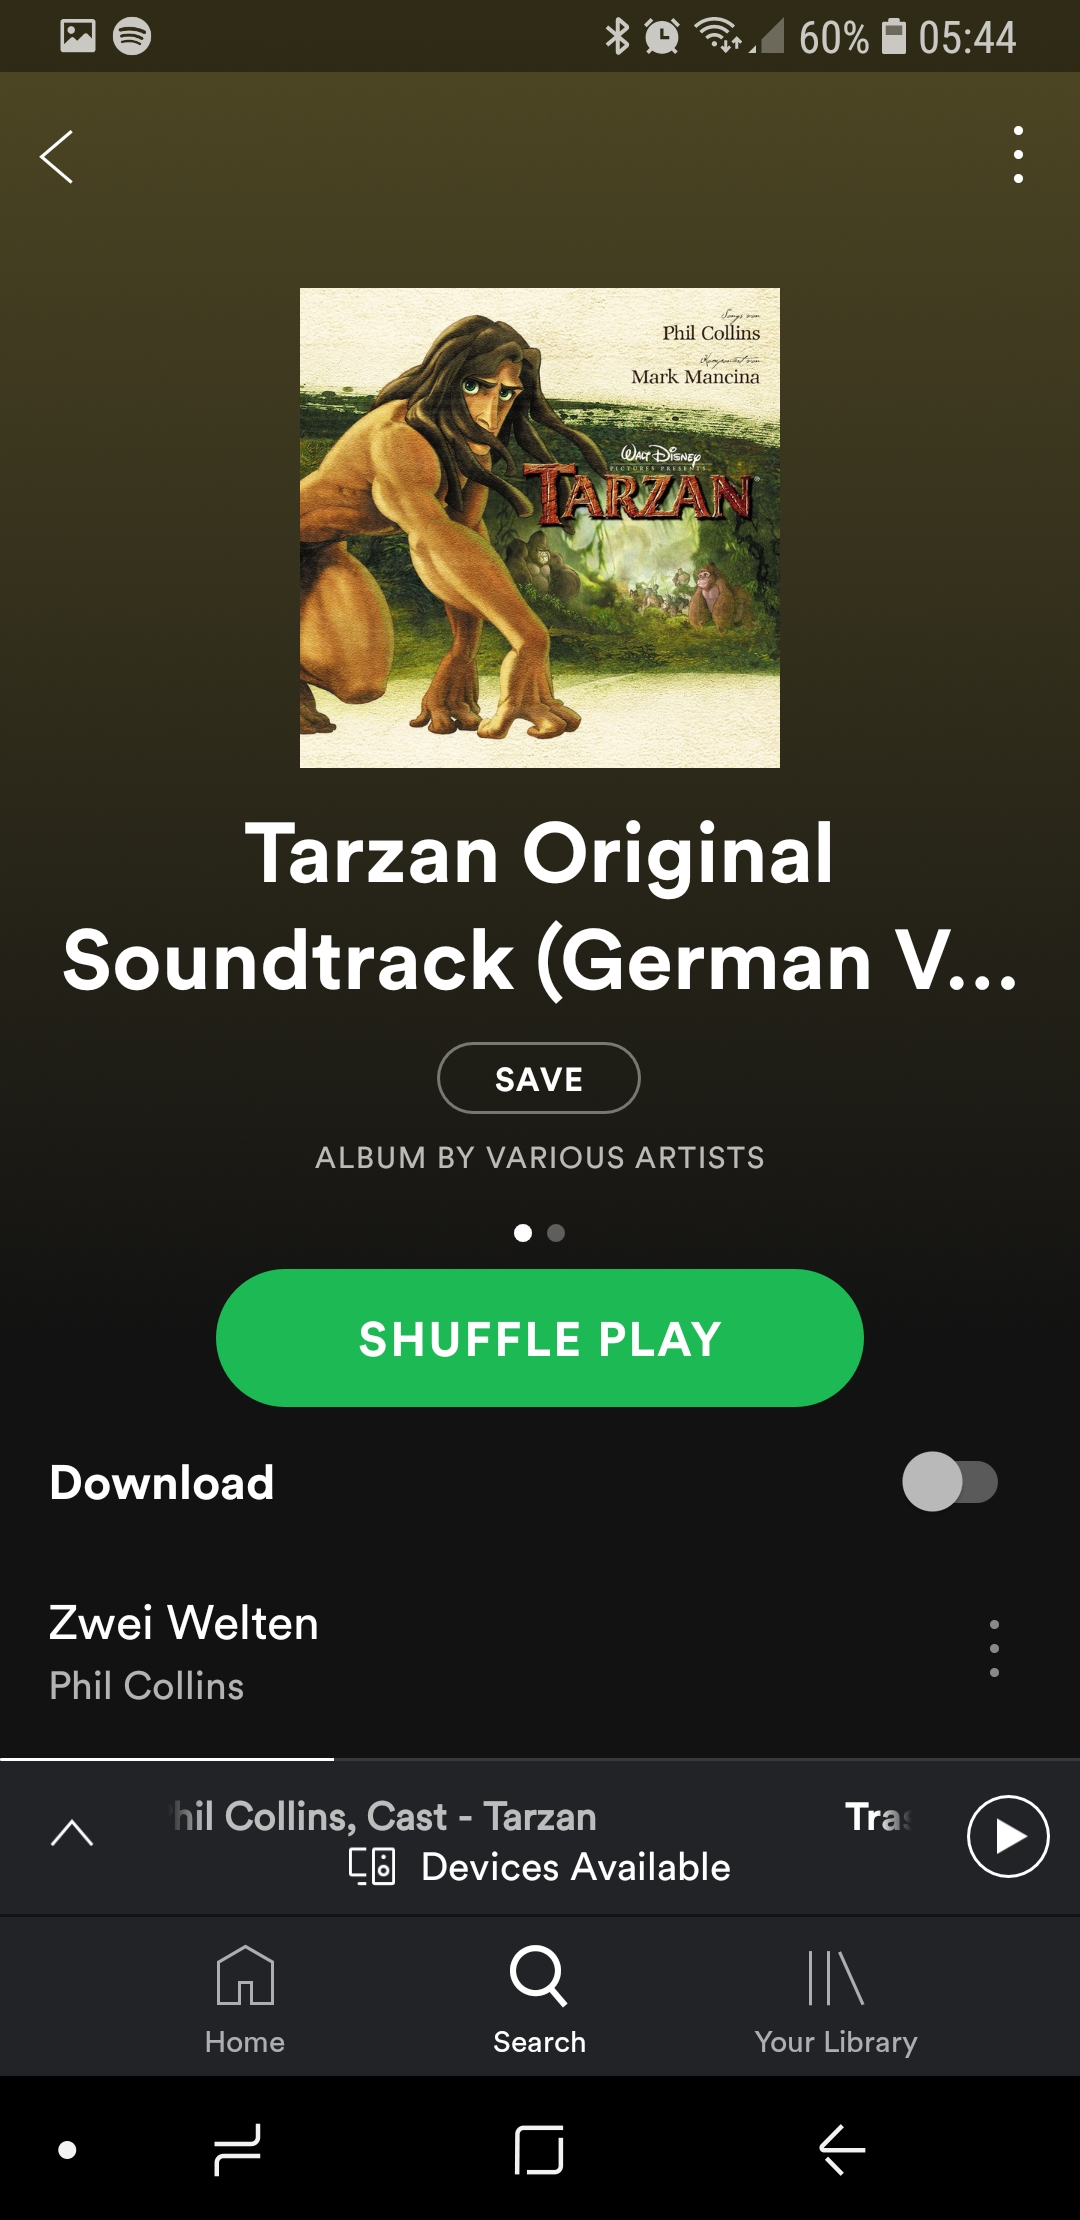 Screenshot_20181229-054446_Spotify.jpg